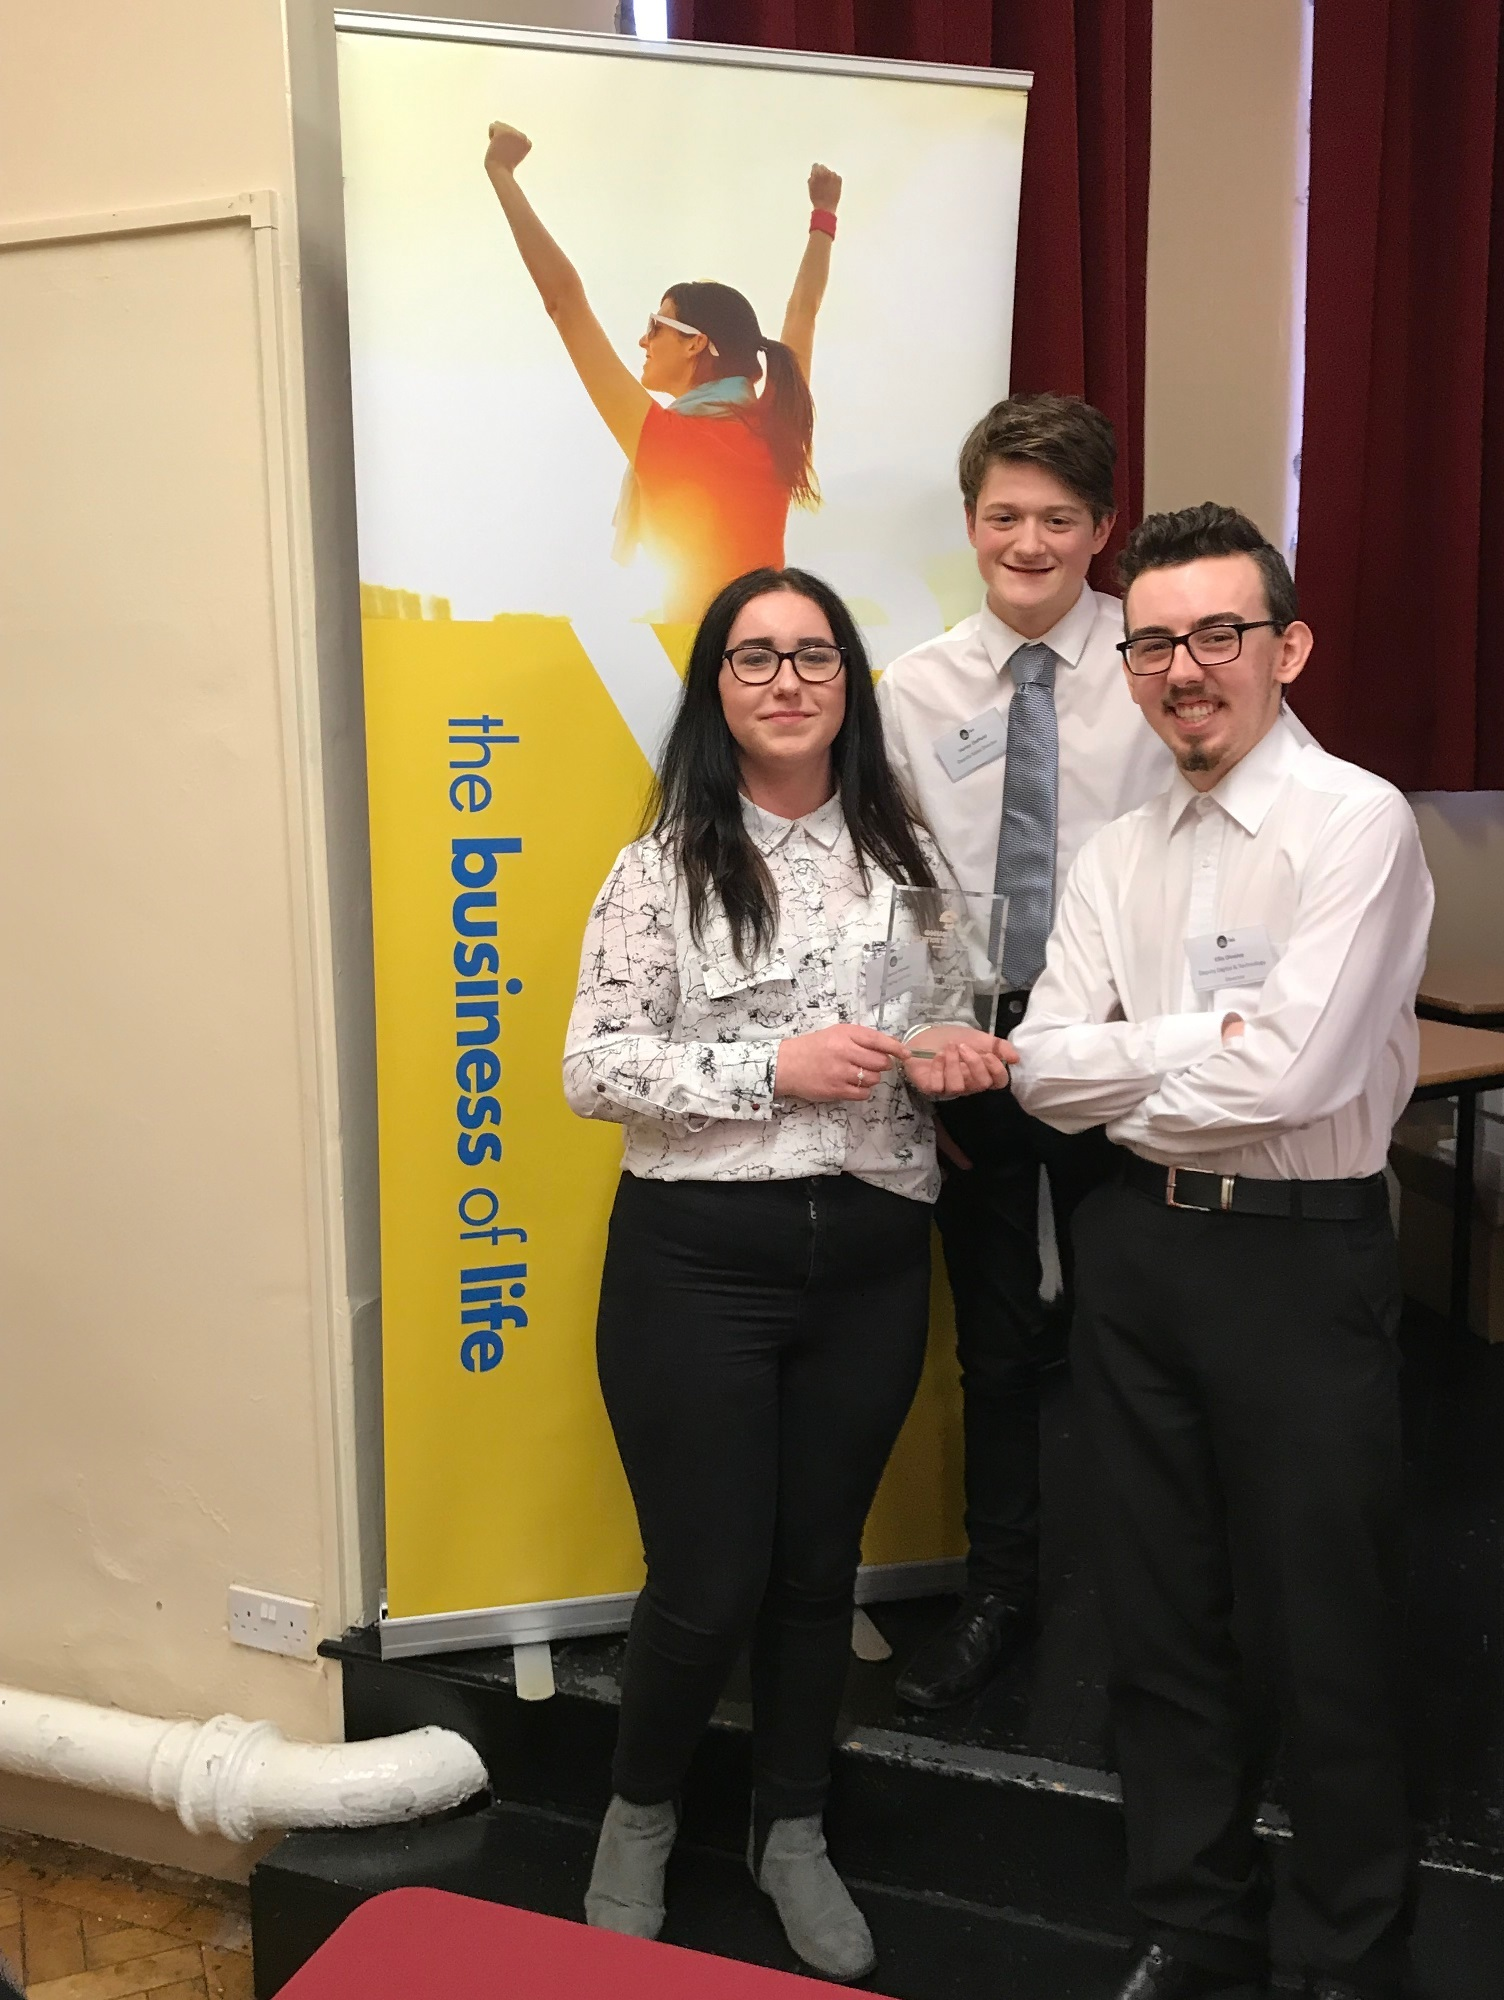 Rhianna Hewer, managing drector of the Young Enterprise team UpTech and team-mates Harley Oldfield and Ellis Dineley.